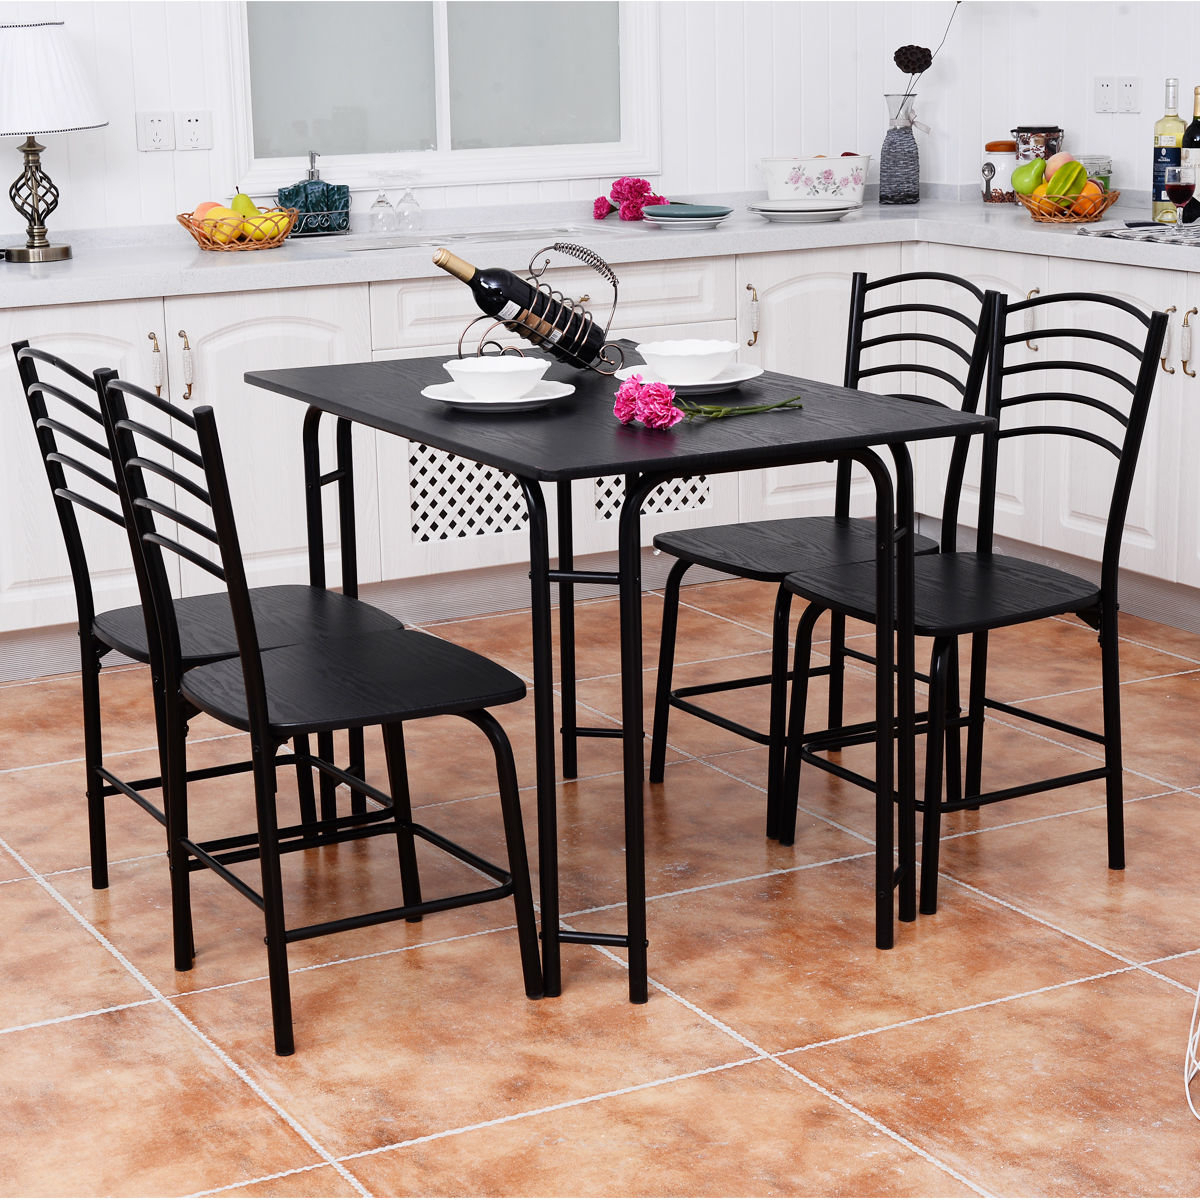 Ebay Pertaining To Famous Ephraim 5 Piece Dining Sets (View 4 of 20)